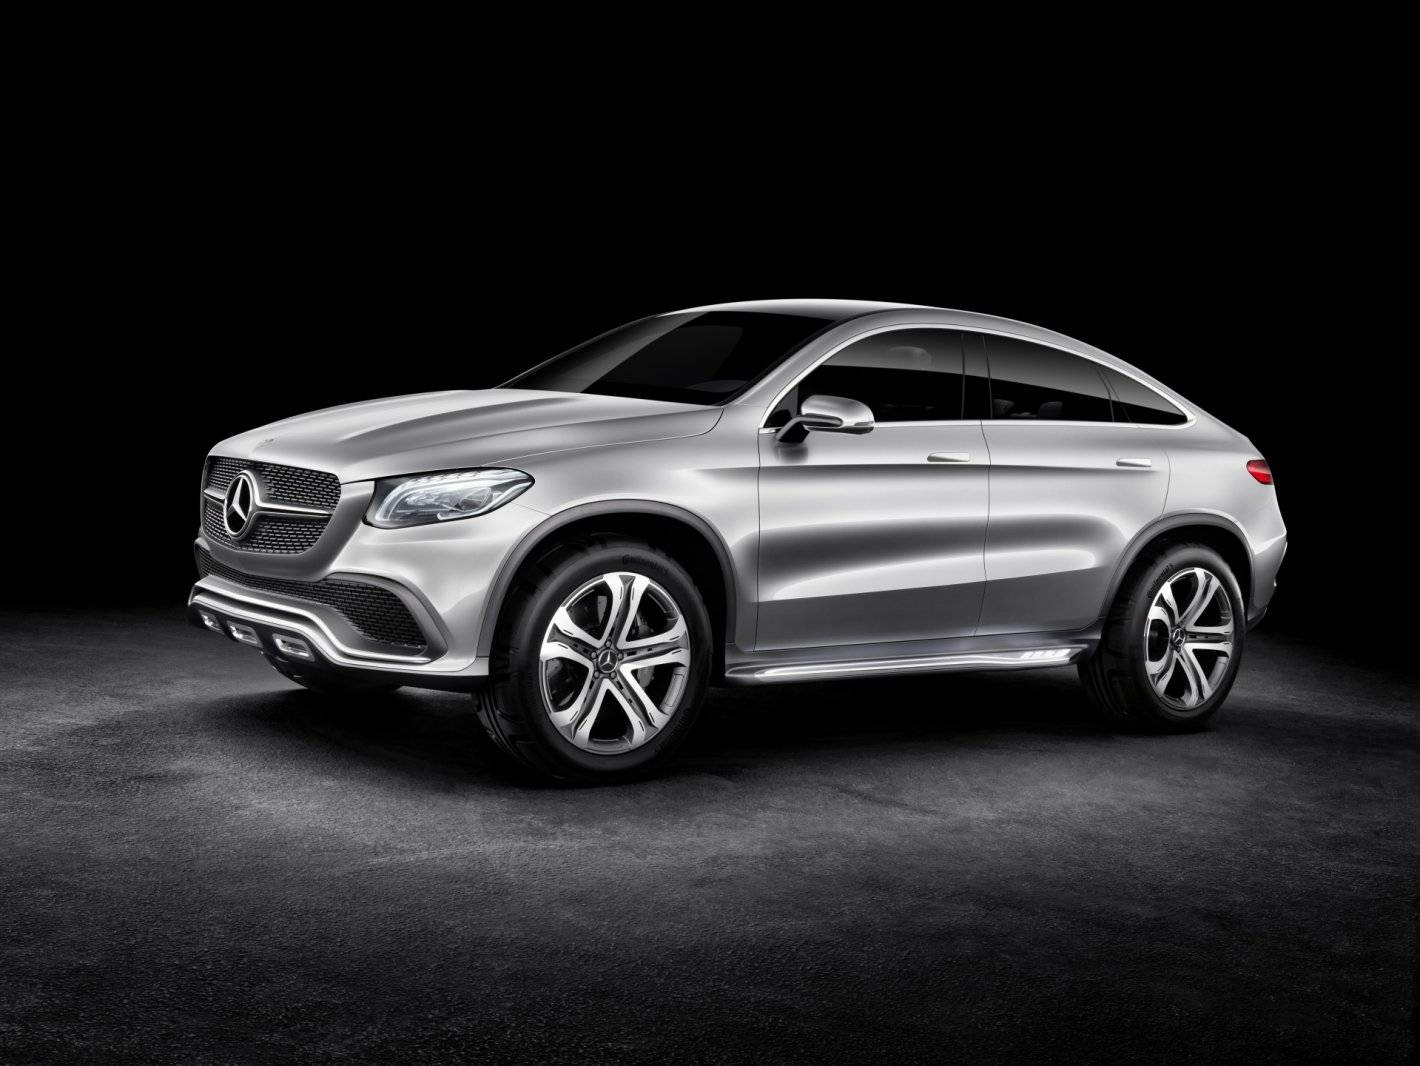 Offici 235 Le X6 Jager Mercedes Concept Coup 233 Suv